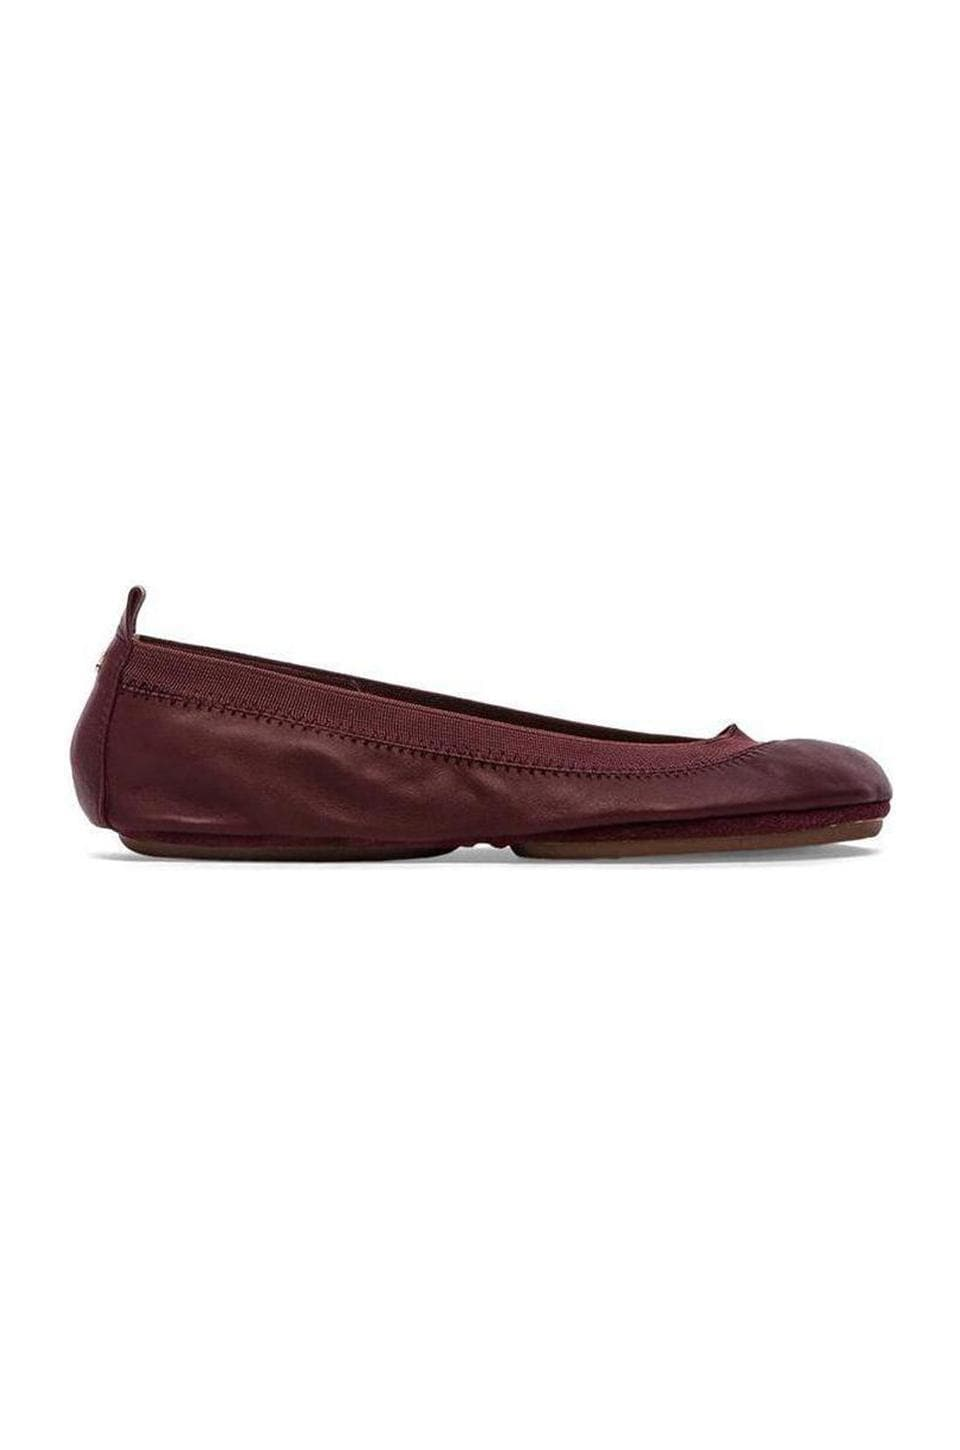 Yosi Samra Soft Leather Fold Up Flat in Tawny Port